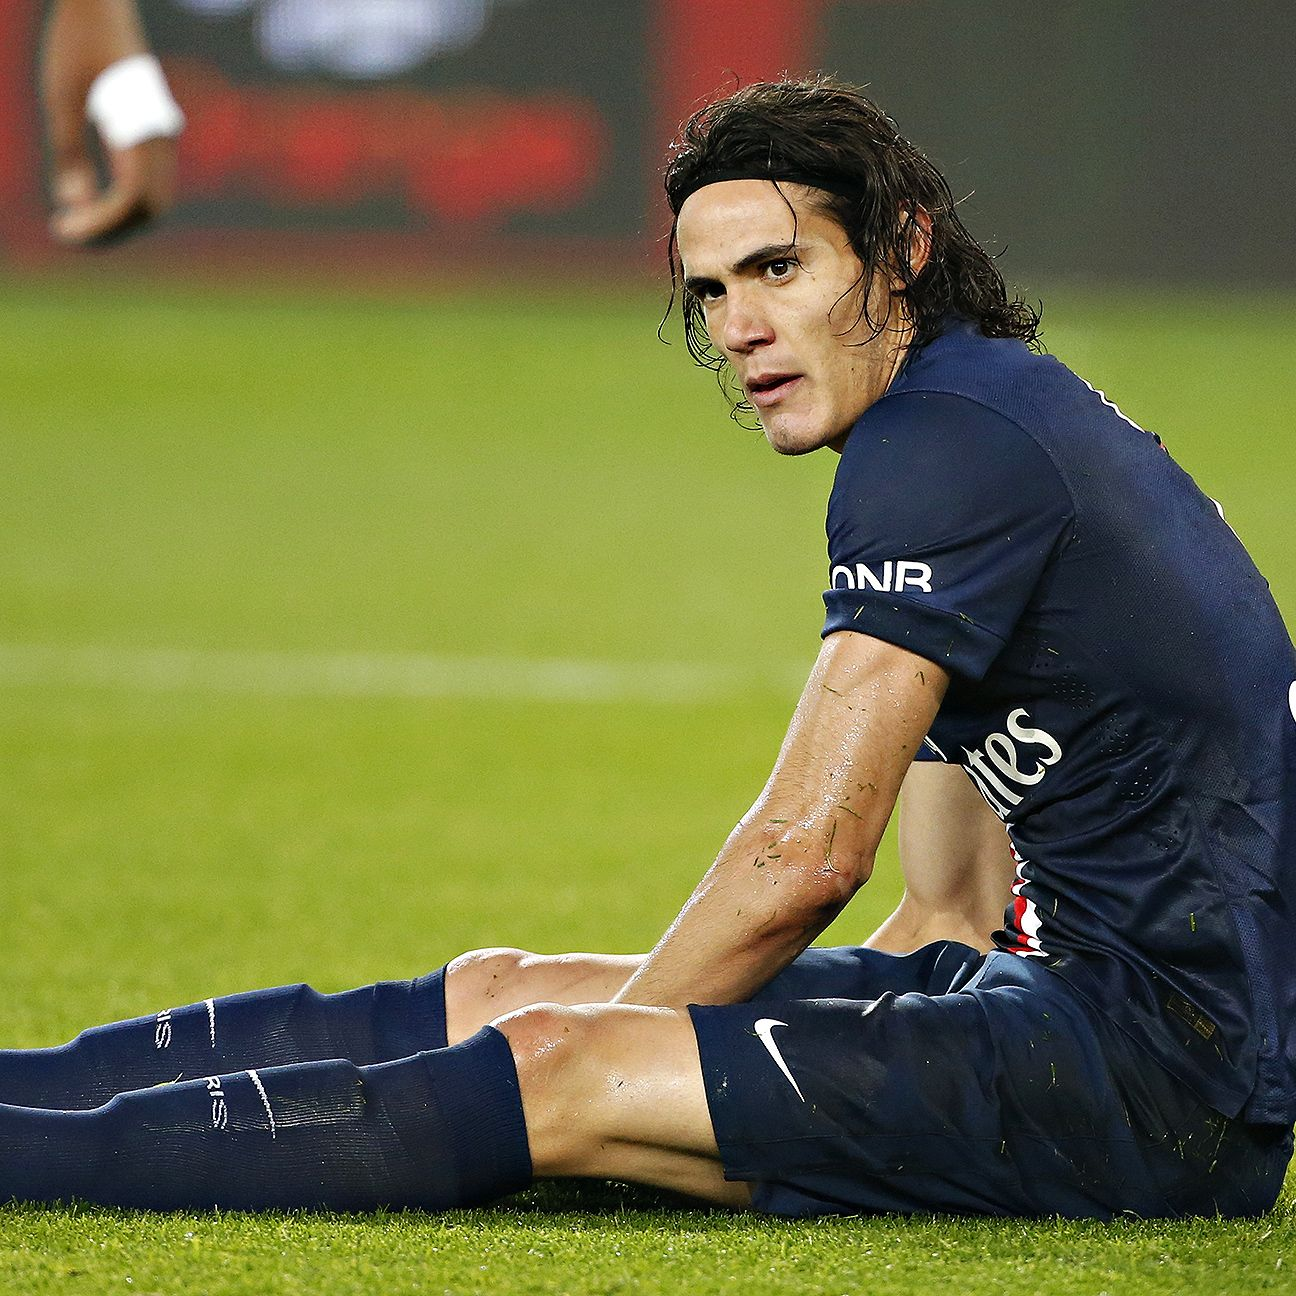 Edinson Cavani will look to answer the critics with a convincing display in PSG's cup clash with Lille.